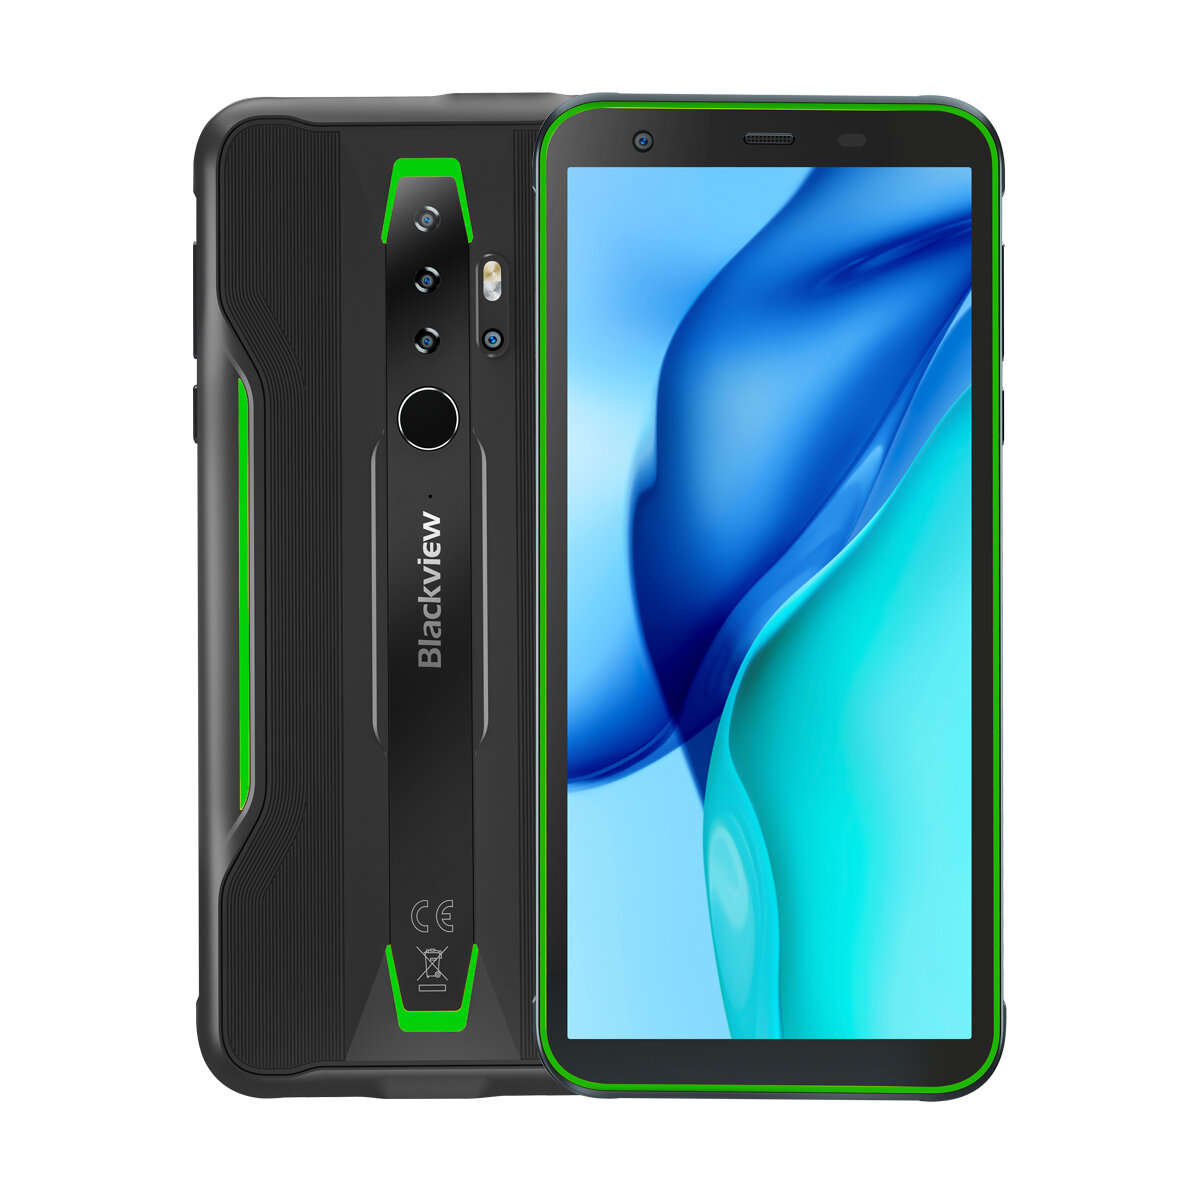 Blackview BV6300 Pro Global Bands IP68/IP69K Waterproof 5.7 inch NFC 4380mAh Android 10 16MP Quad Camera 6GB 128GB Helio P70 Octa Core 4G Smartphone - Green